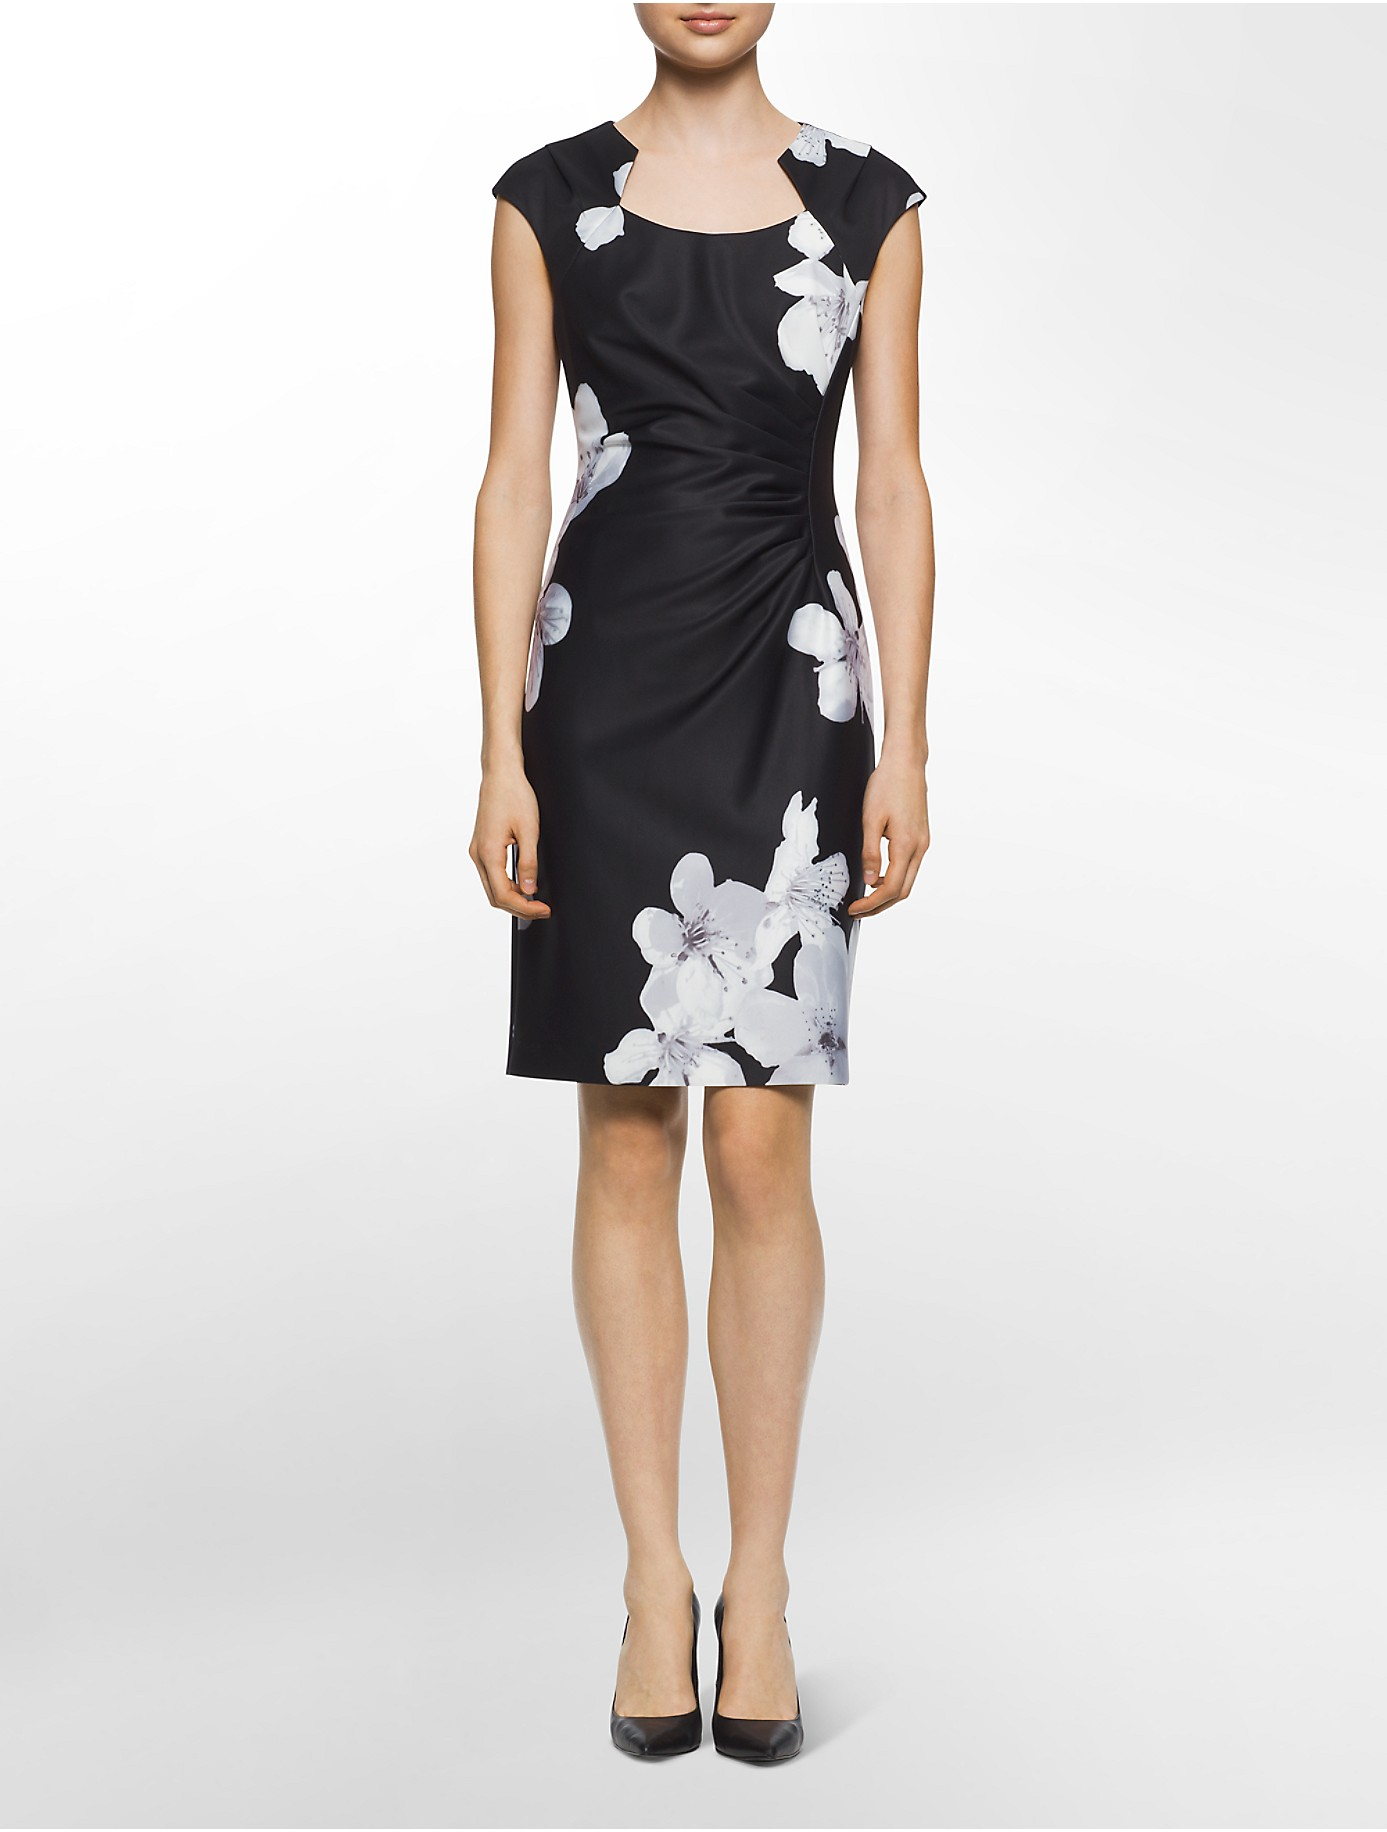 Black And White Flower Print Dress Flowers Healthy